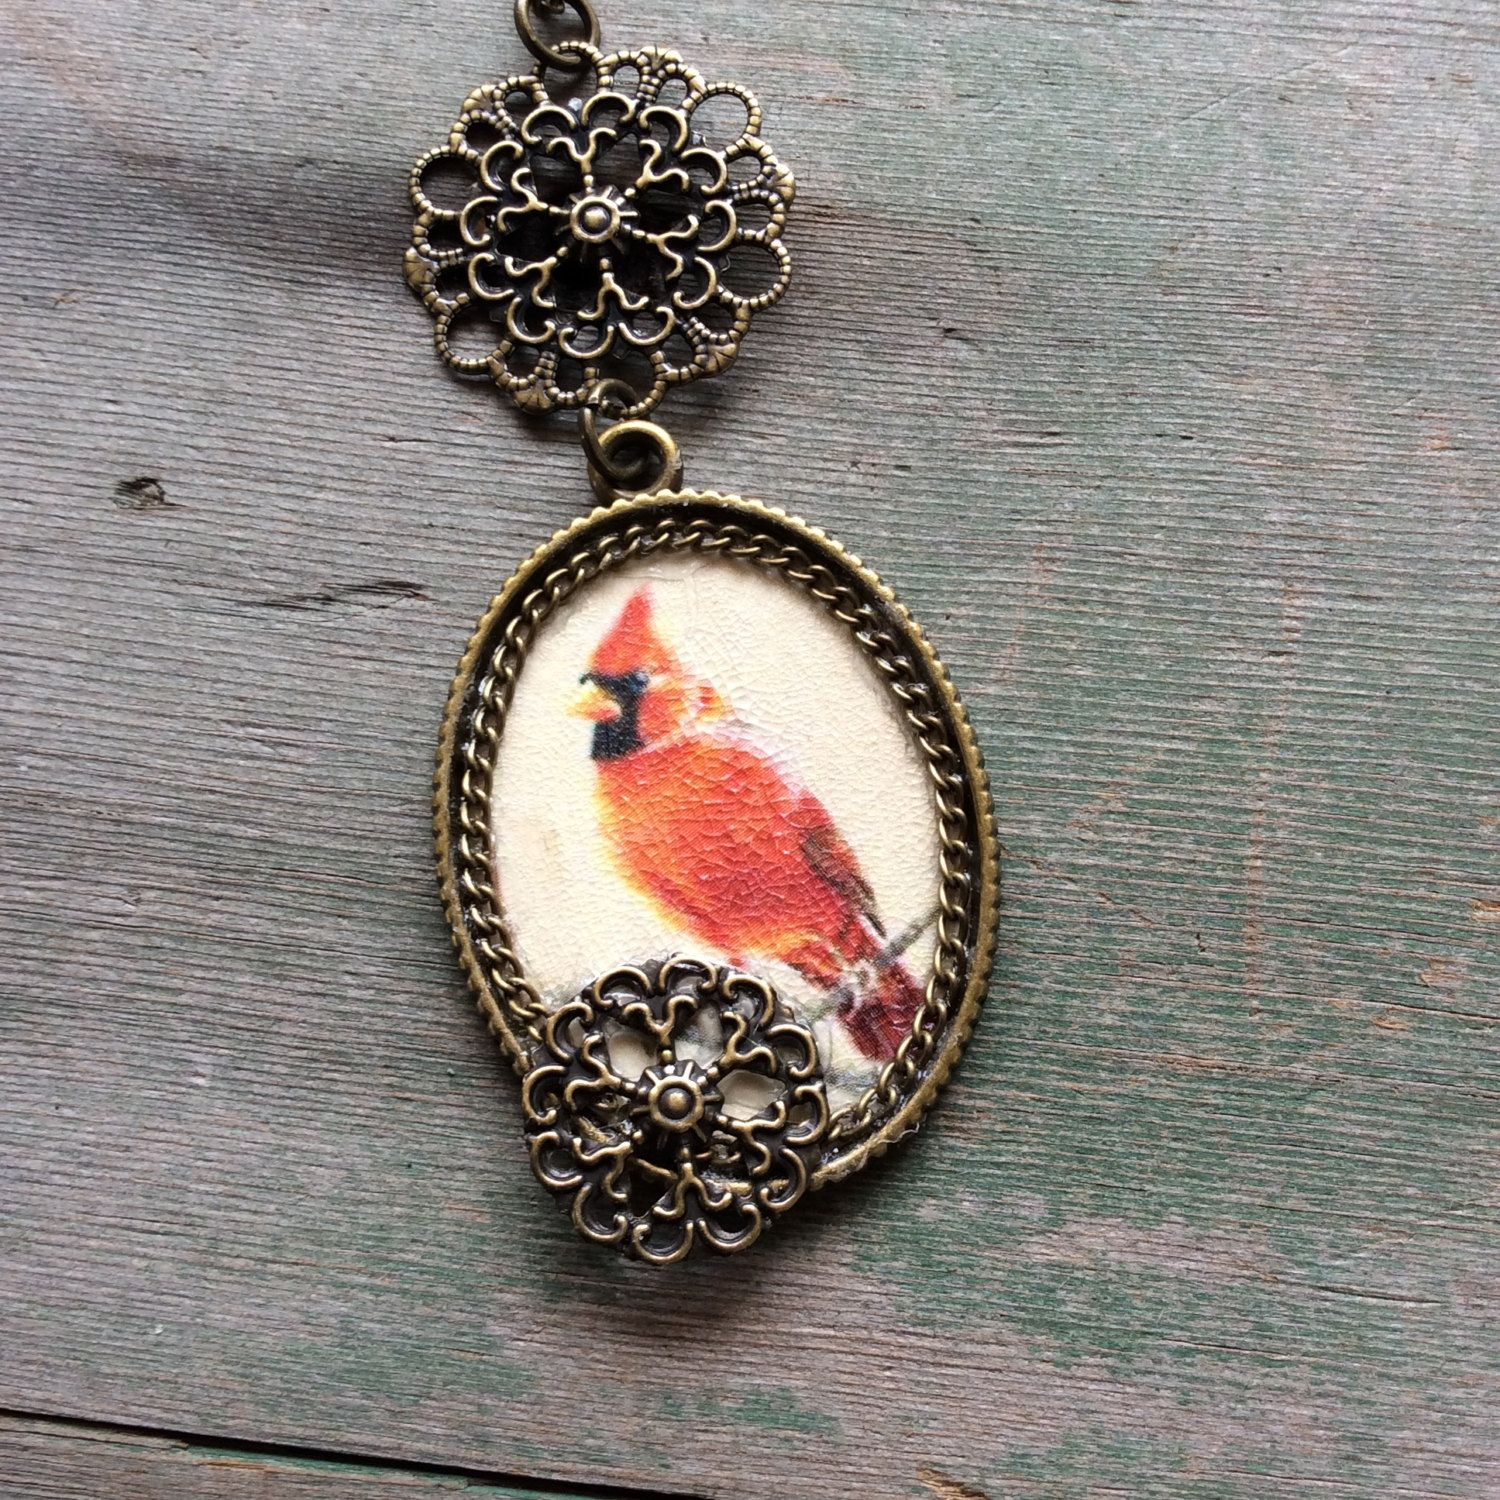 shipping bird buy get jewelry and w com print art cardinal aqua free glass aliexpress necklace background on red christmas wholesale